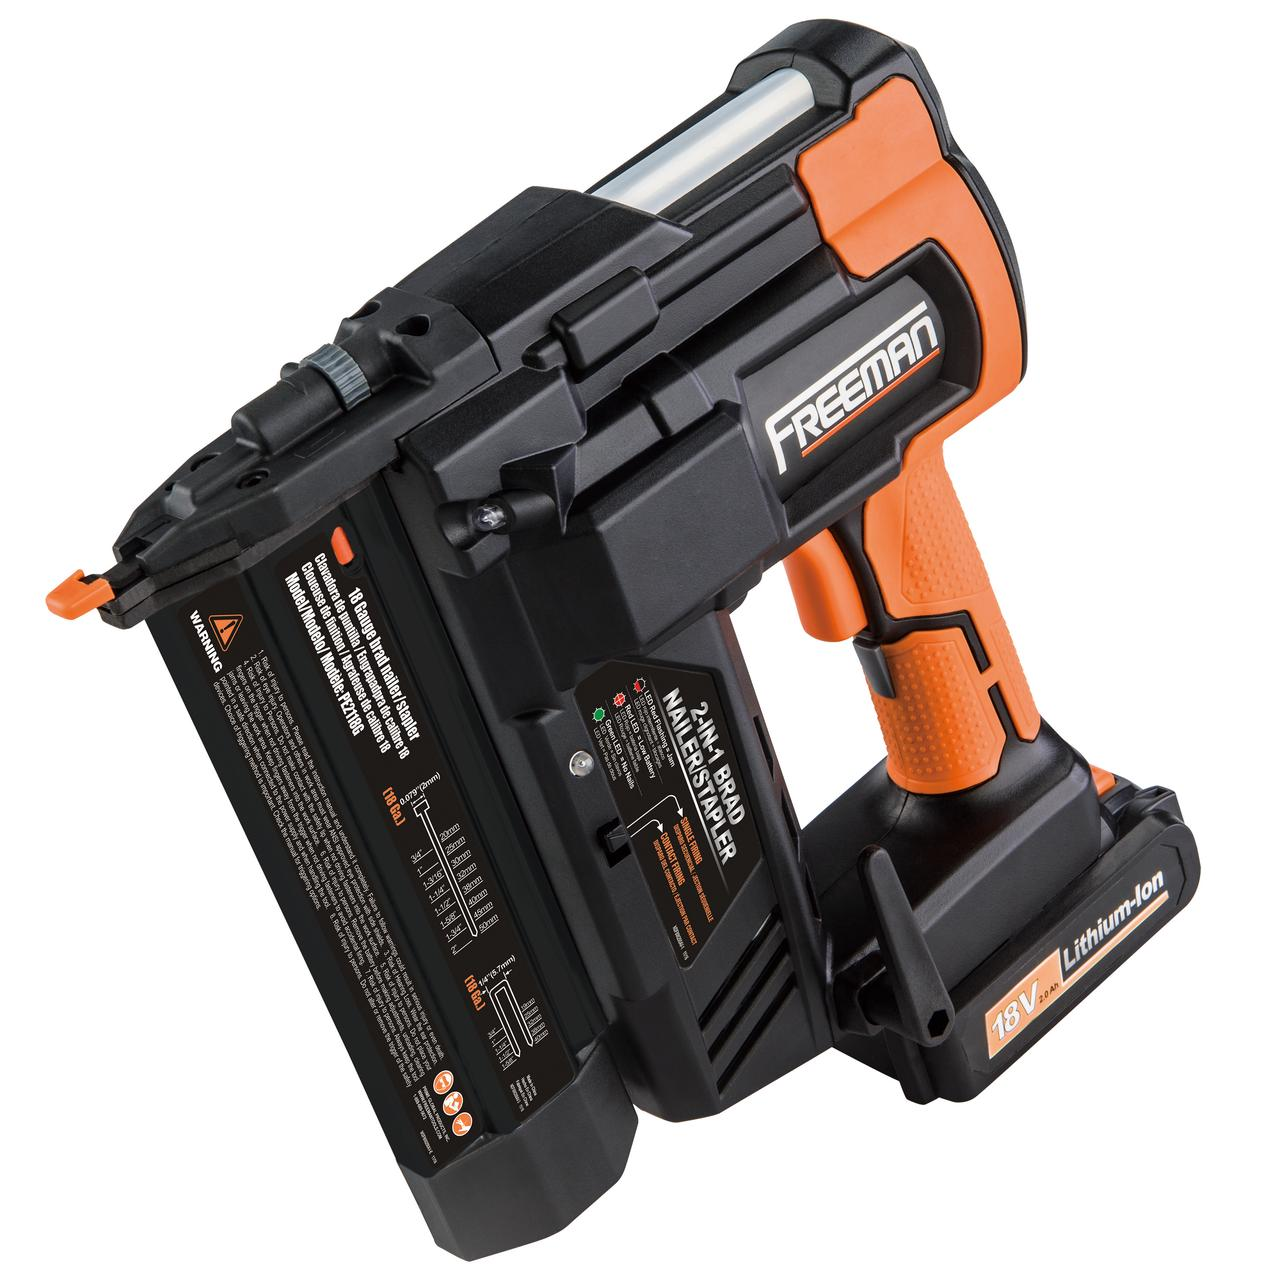 Freeman PE2118G 18 Volt 2-in-1 Cordless Nailer & Stapler w/Batteries